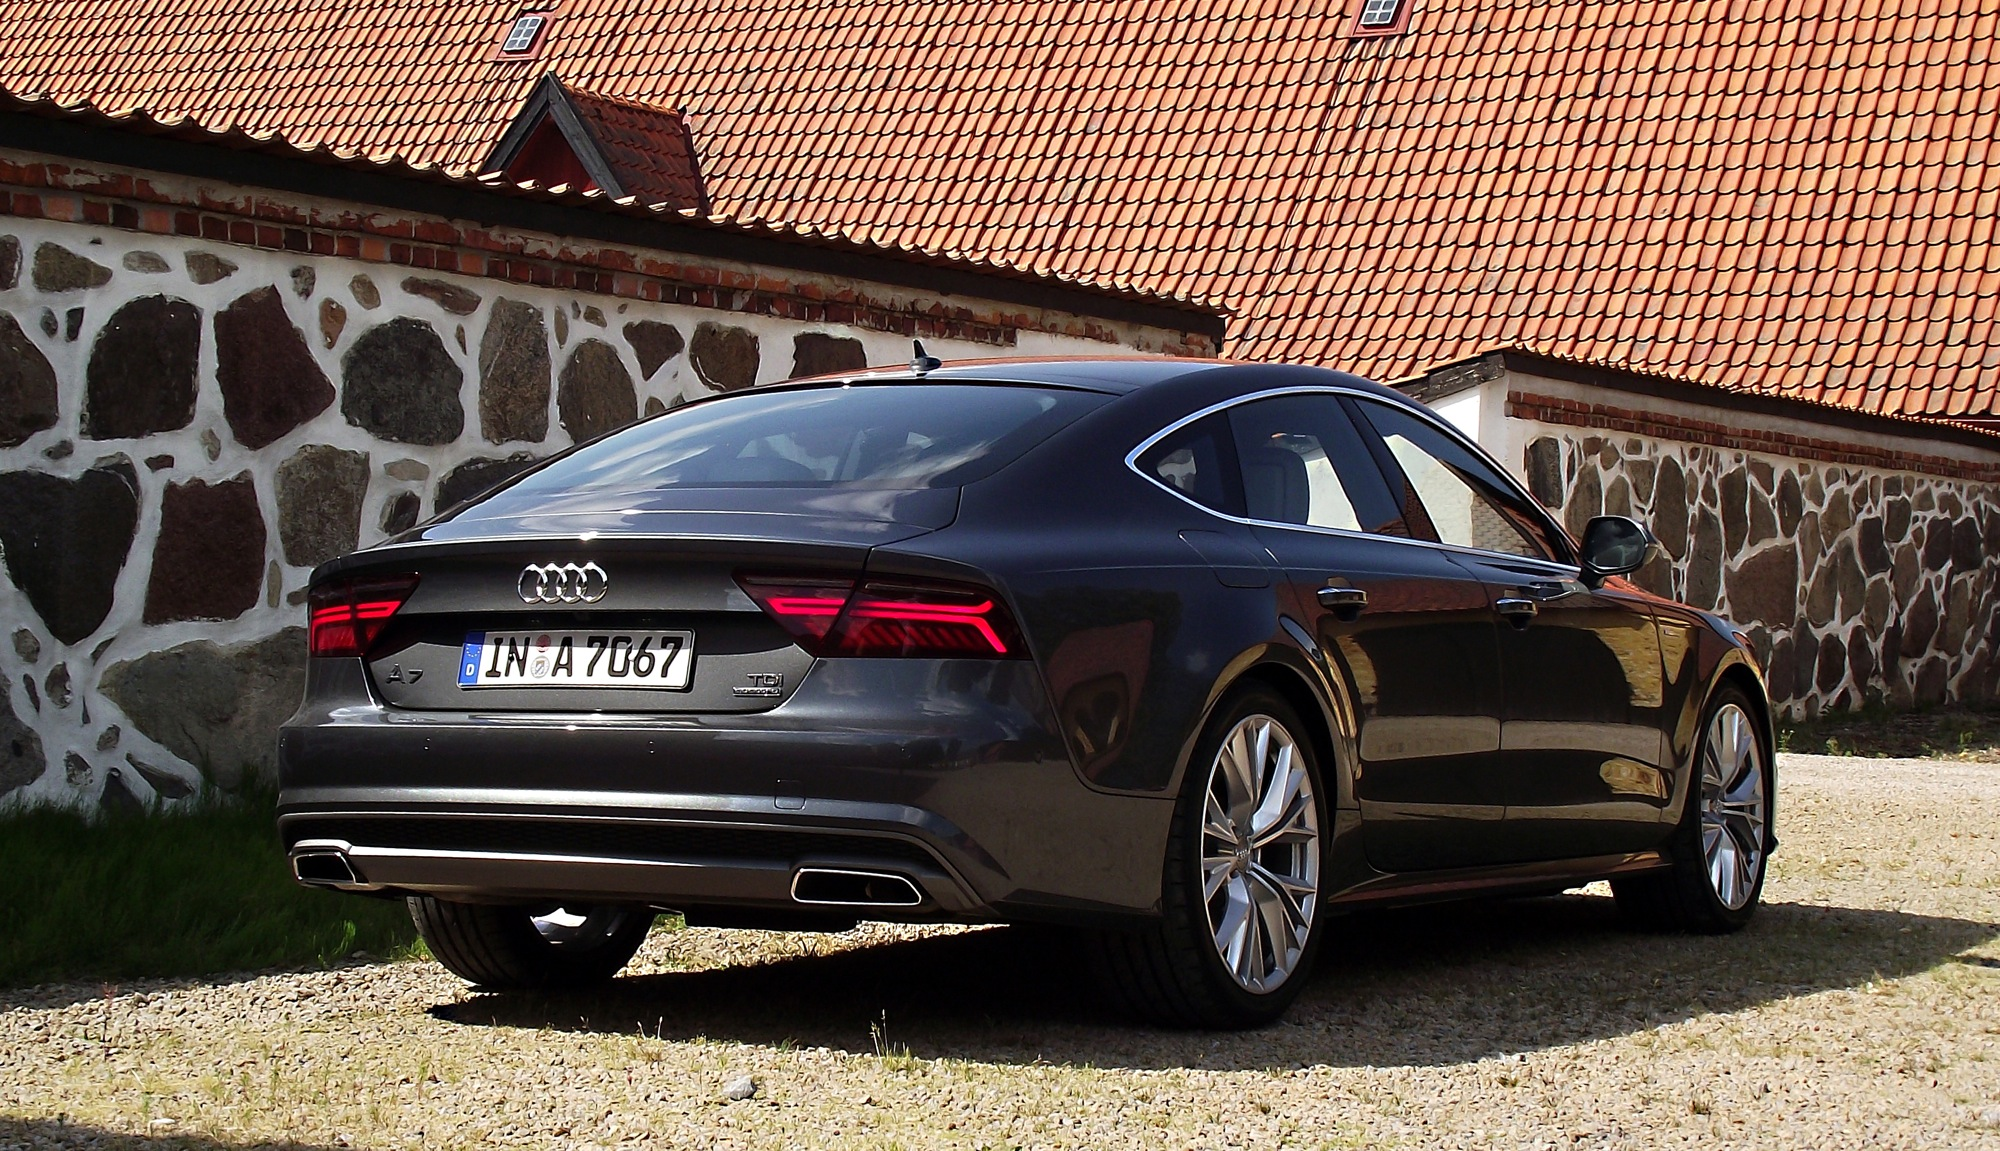 datei 2014 audi a7 sportback typ 4g facelift 3 0 tdi. Black Bedroom Furniture Sets. Home Design Ideas